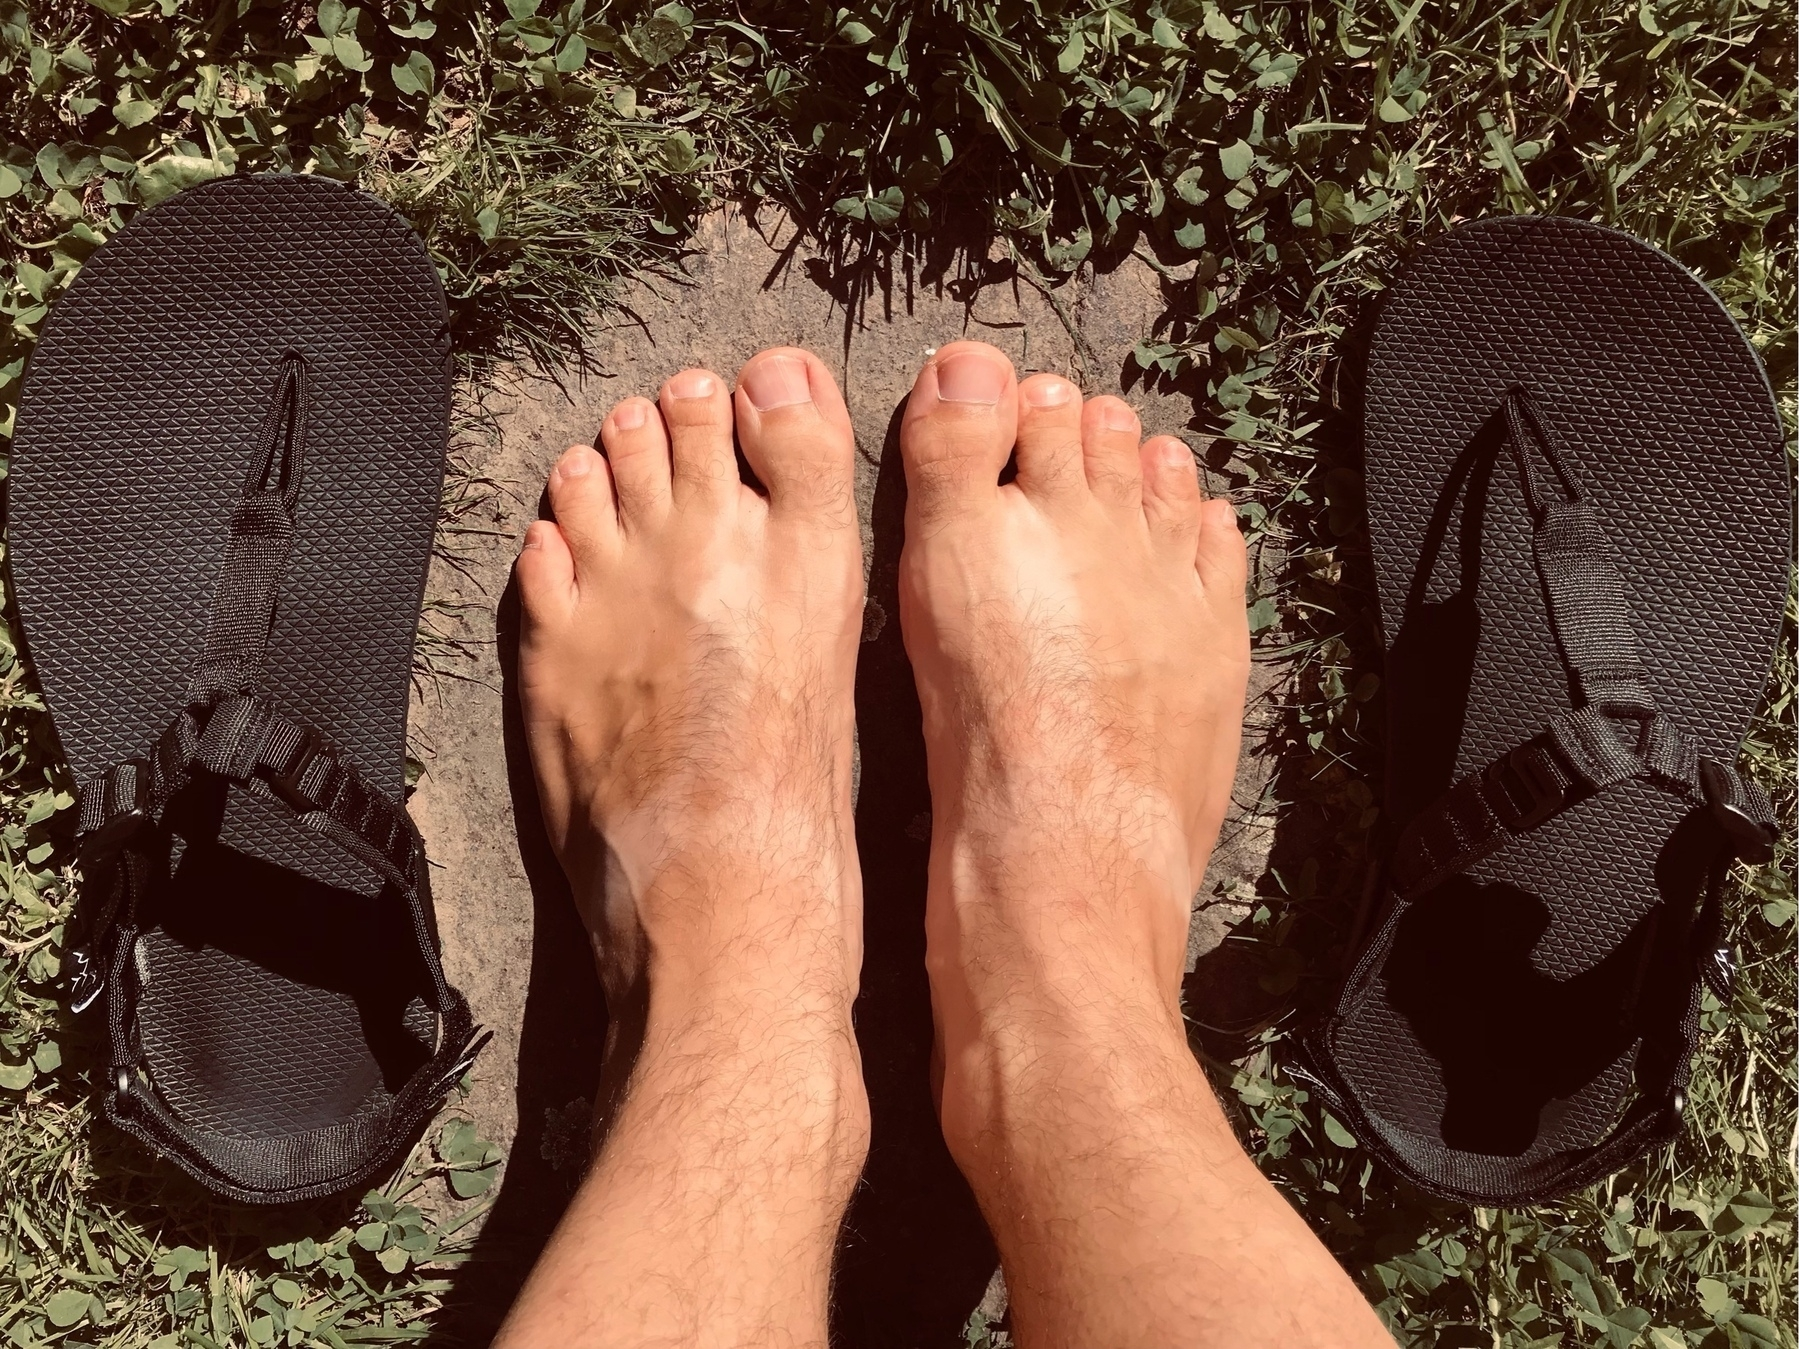 Top view of lightly tanned bare feet with tan lines in the shape of sandal straps. The black sandals that caused those tan lines laying to the left and right of the feet.